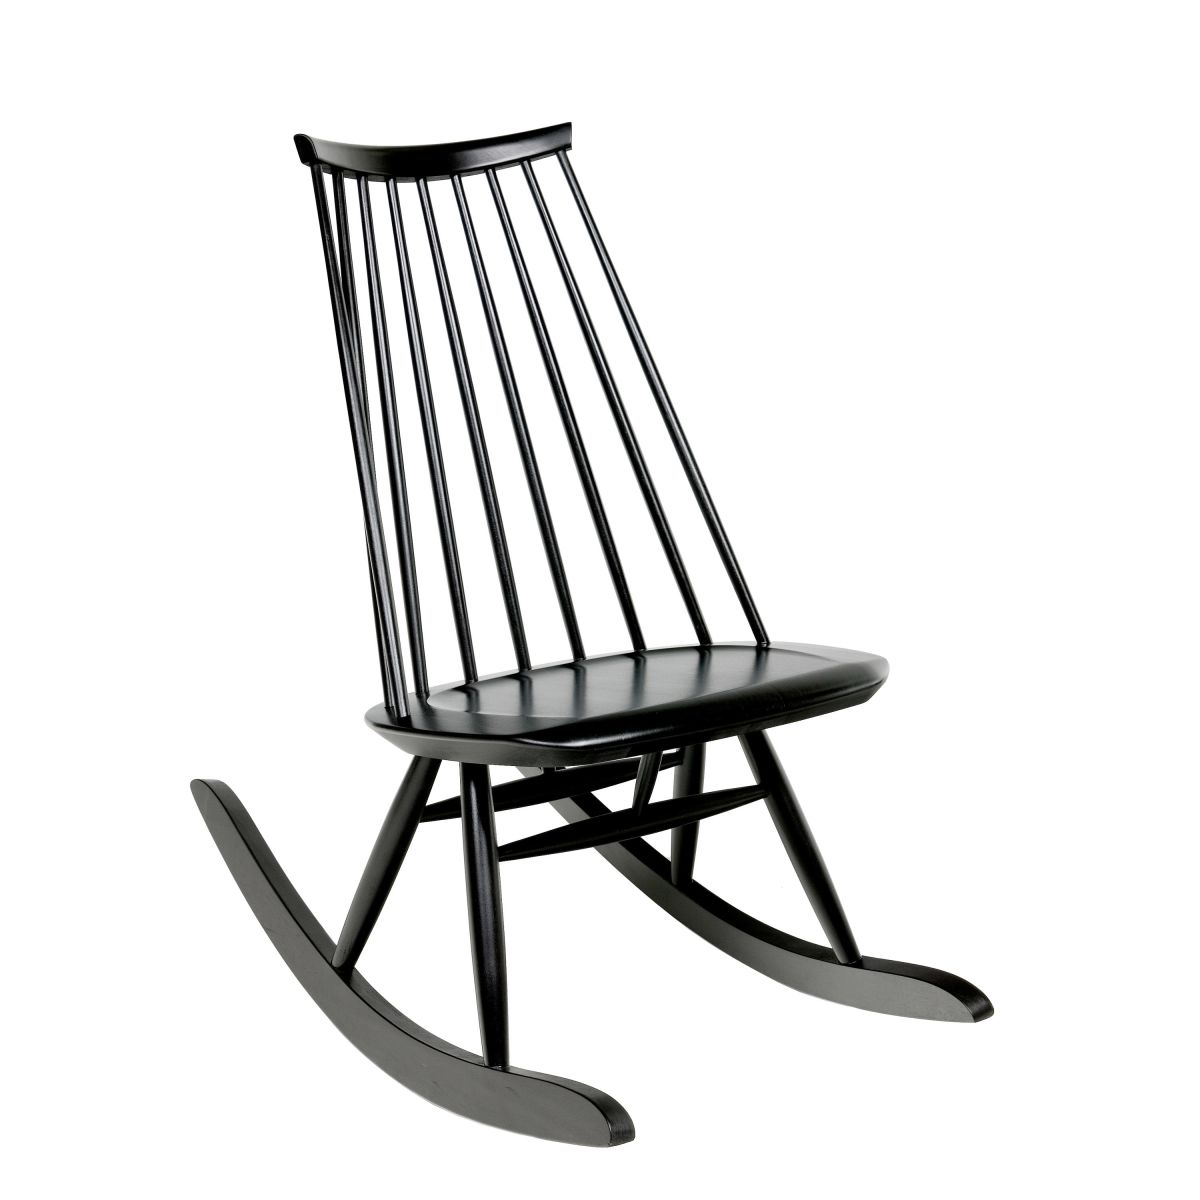 Mademoiselle-Rocking-Chair-Black-Lacquer_Web-1977280